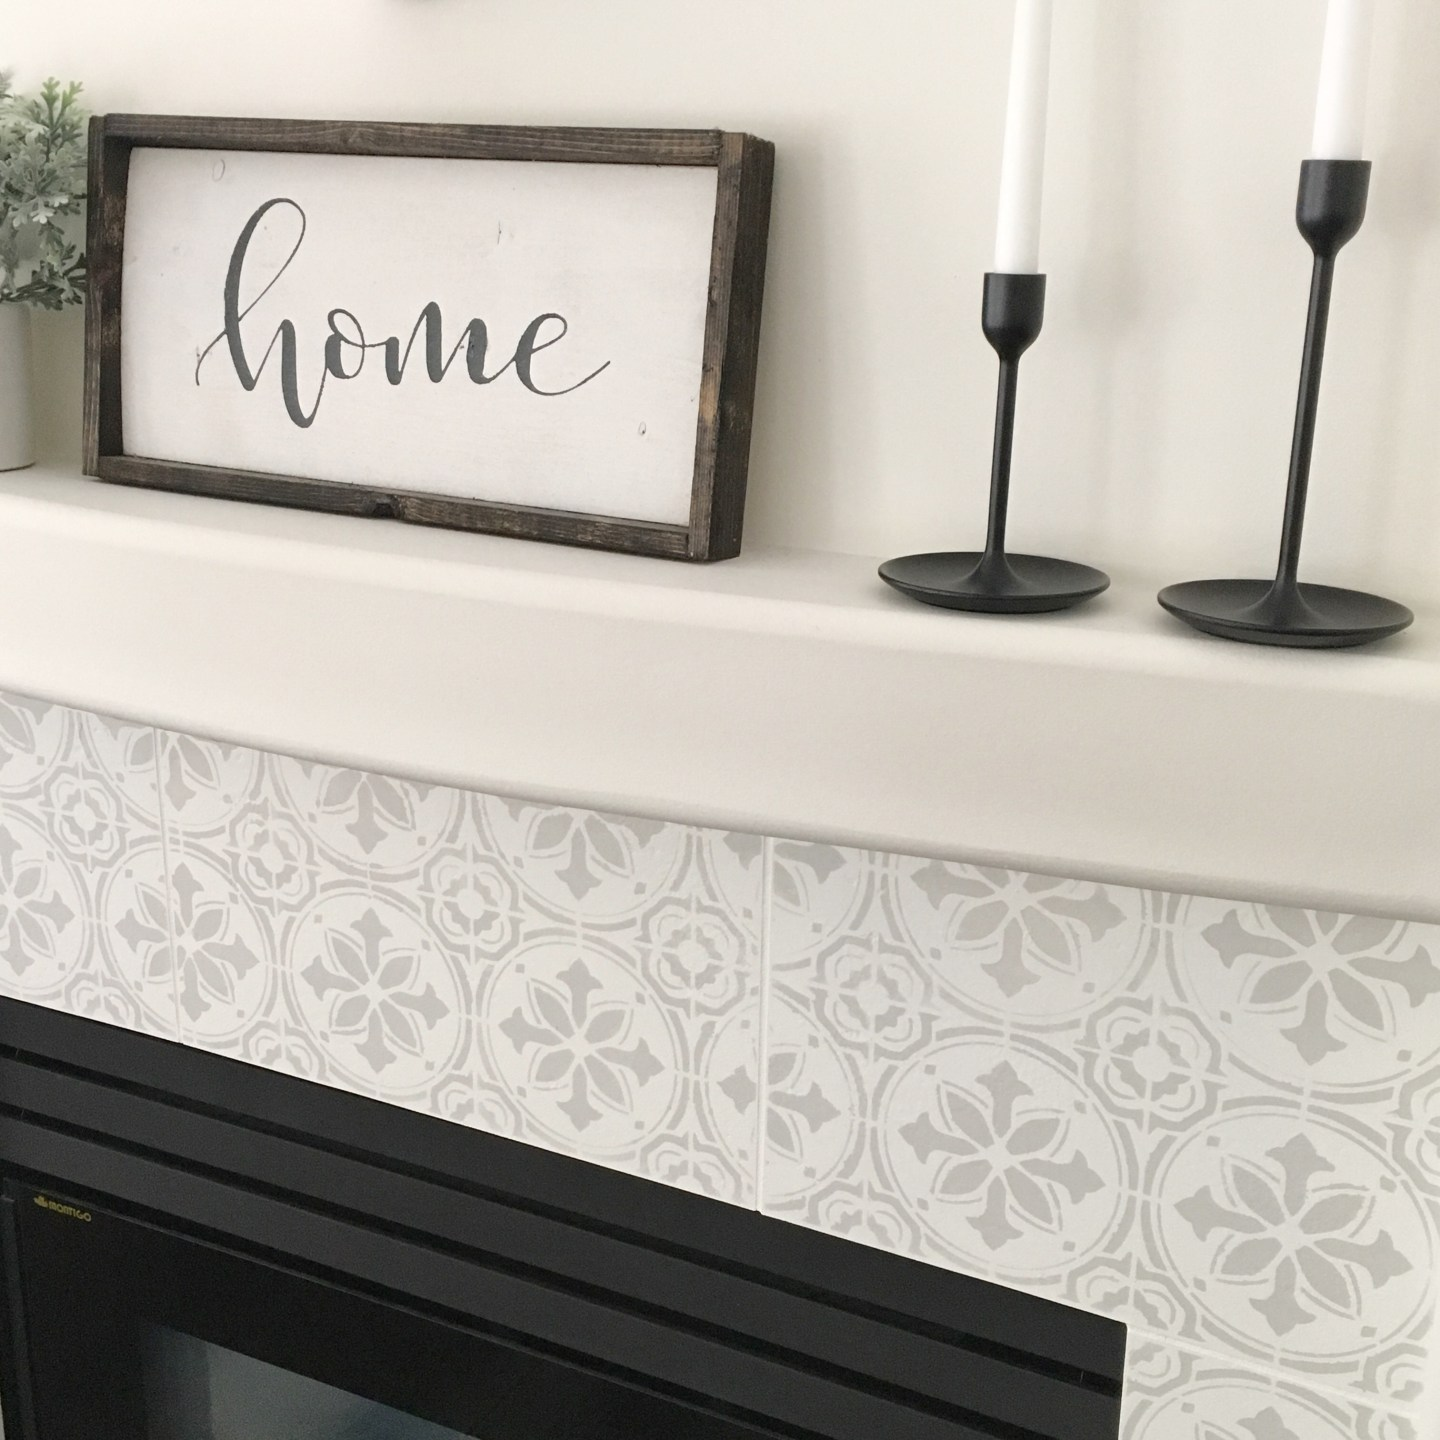 Stenciled Tile DIY Fireplace Makeover